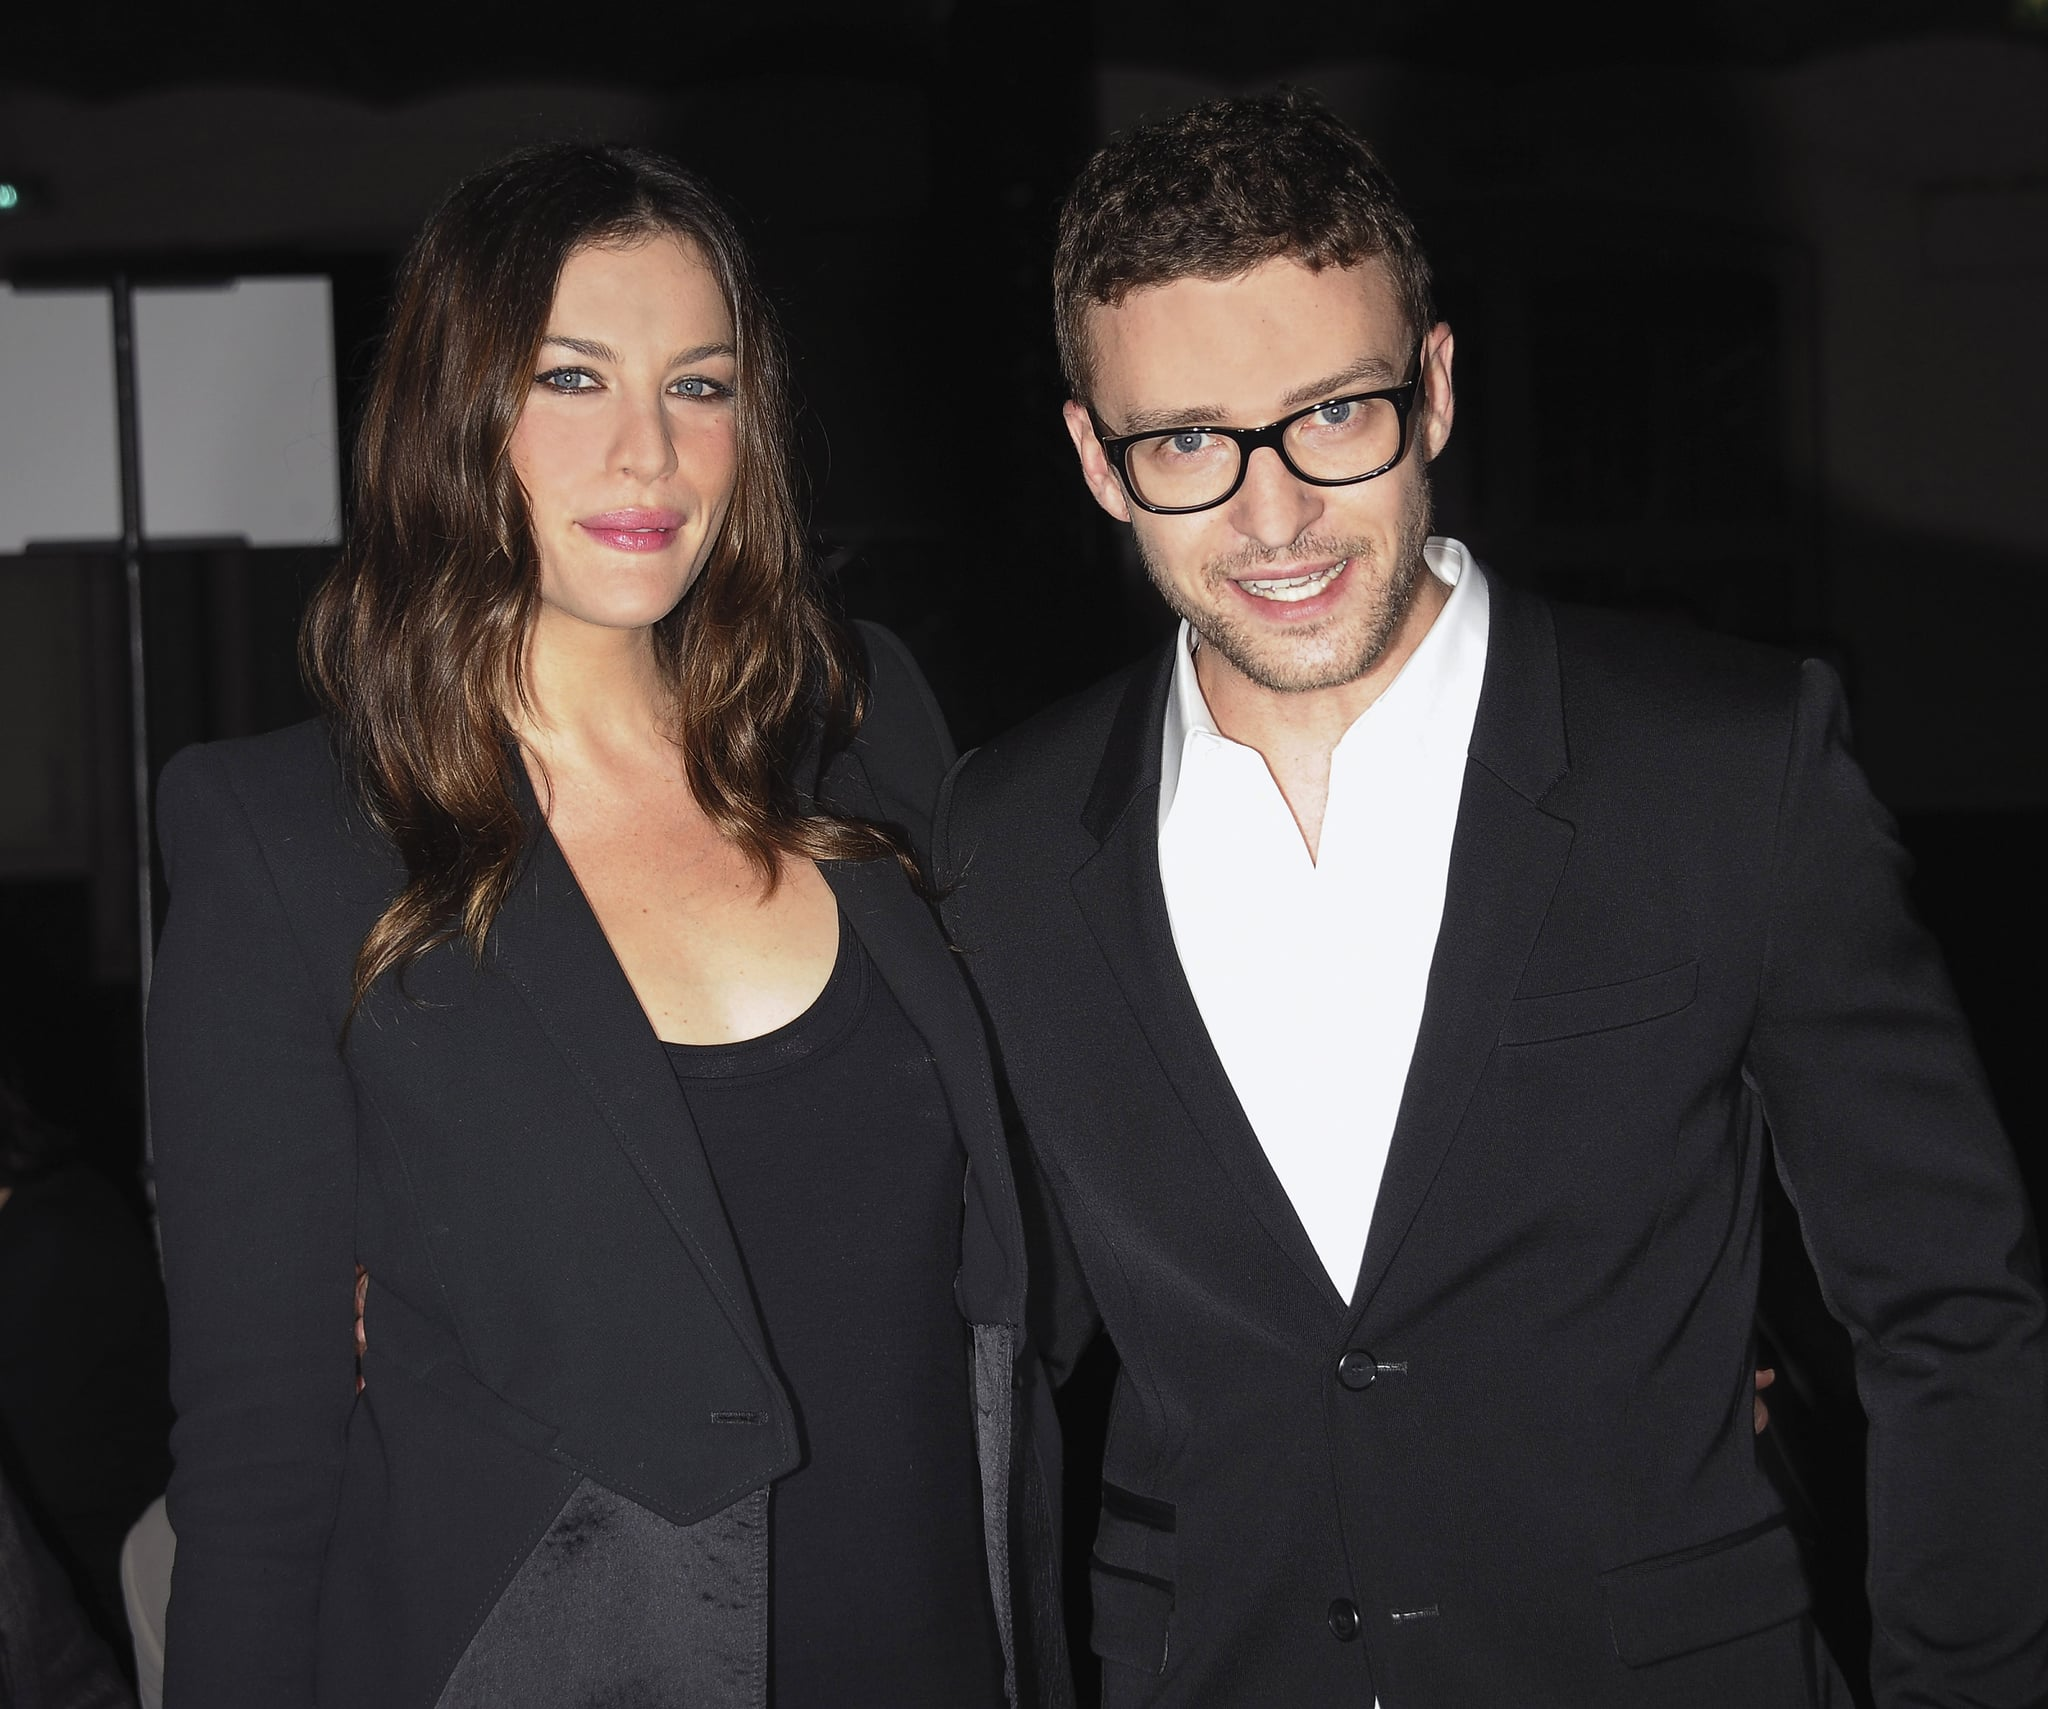 Liv Tyler posed with a bespectacled Justin backstage at the Givenchy fashion show in 2010.